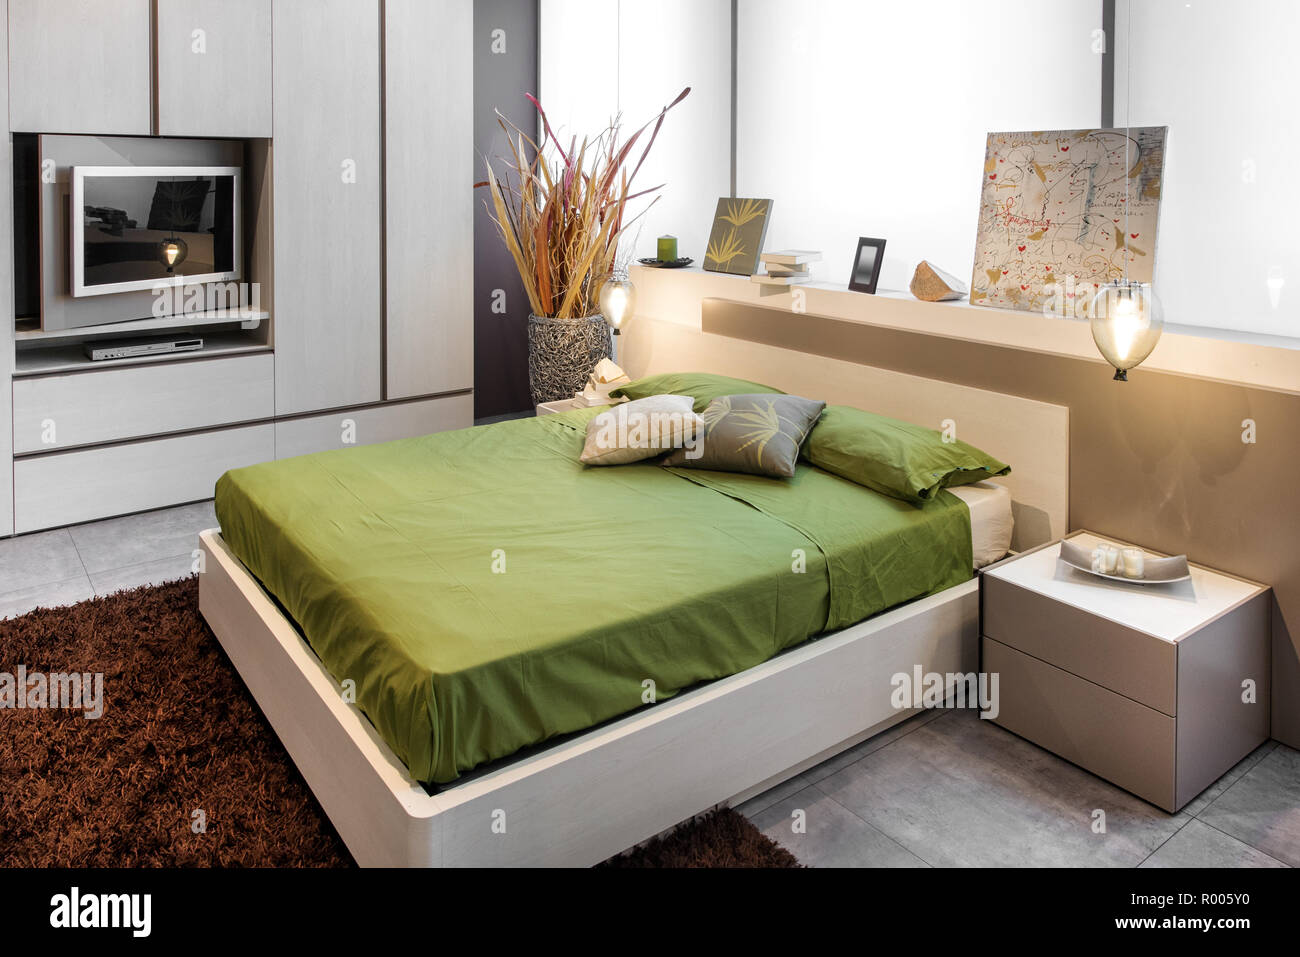 Modern Bedroom Design With High Double Bed With Green Linens And Brown Carpet On The Floor Stock Photo Alamy